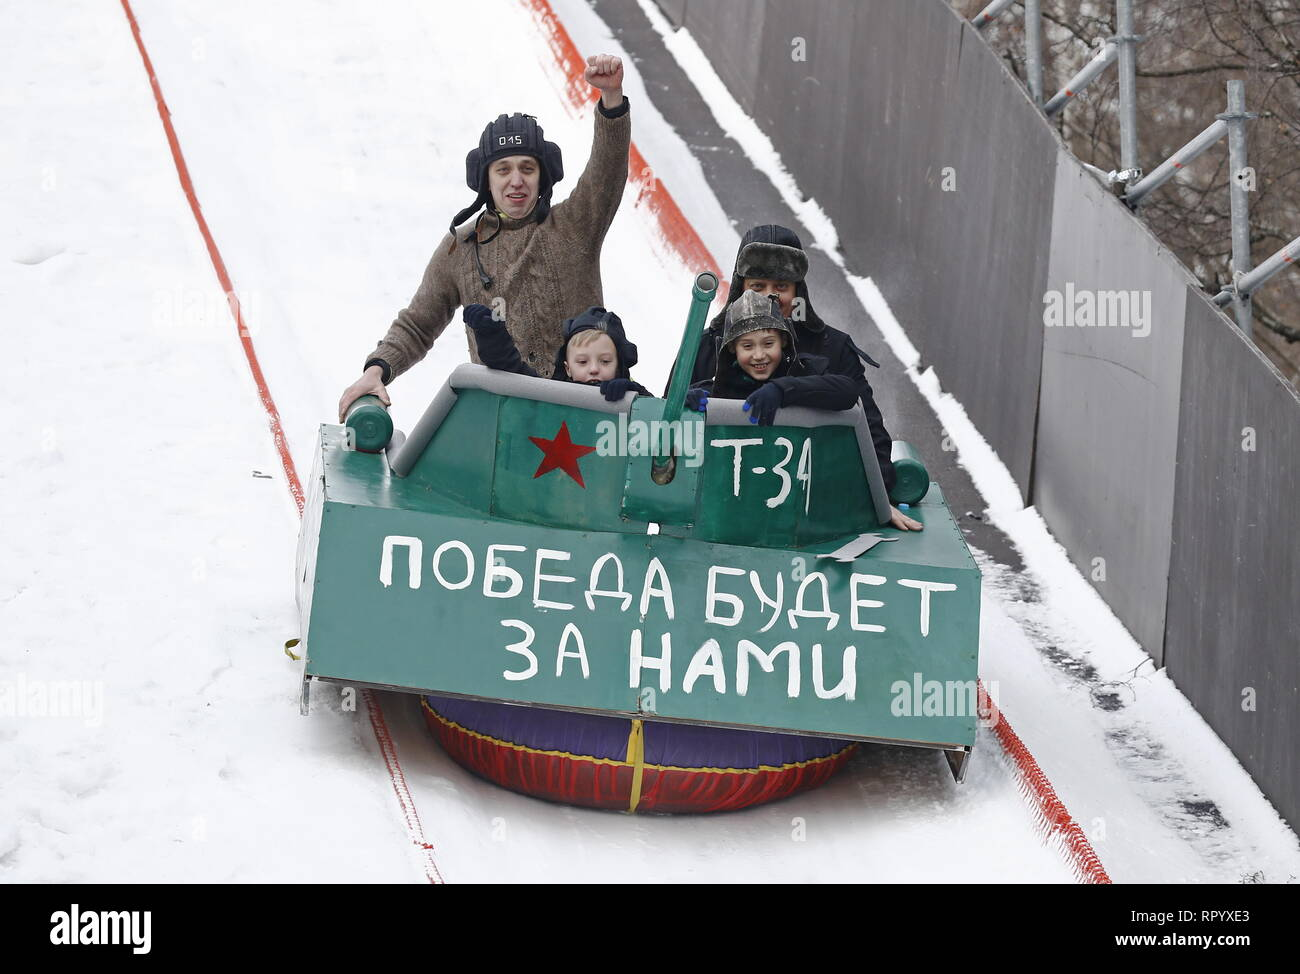 Moscow, Russia. 23rd Feb, 2019. MOSCOW, RUSSIA - FEBRUARY 23, 2019: Participants ride the sledge they have designed for the Battle Sani creative sledge festival in Moscow. Artyom Geodakyan/TASS Credit: ITAR-TASS News Agency/Alamy Live News Stock Photo